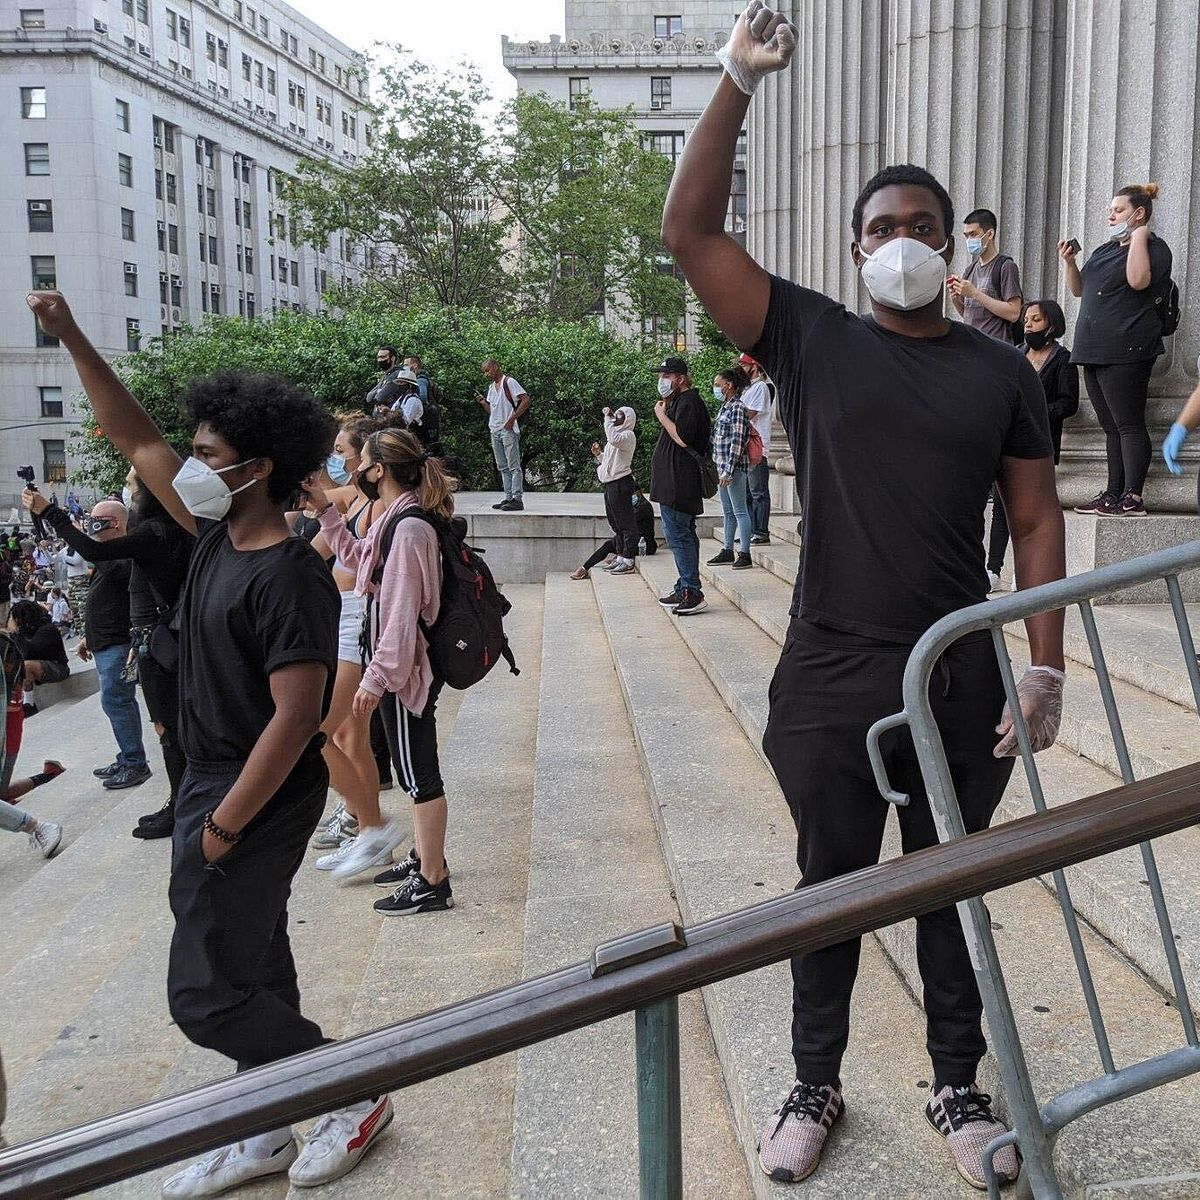 A man wears mask and gloves at police-brutality protest in Manhattan, May 31, 2020.